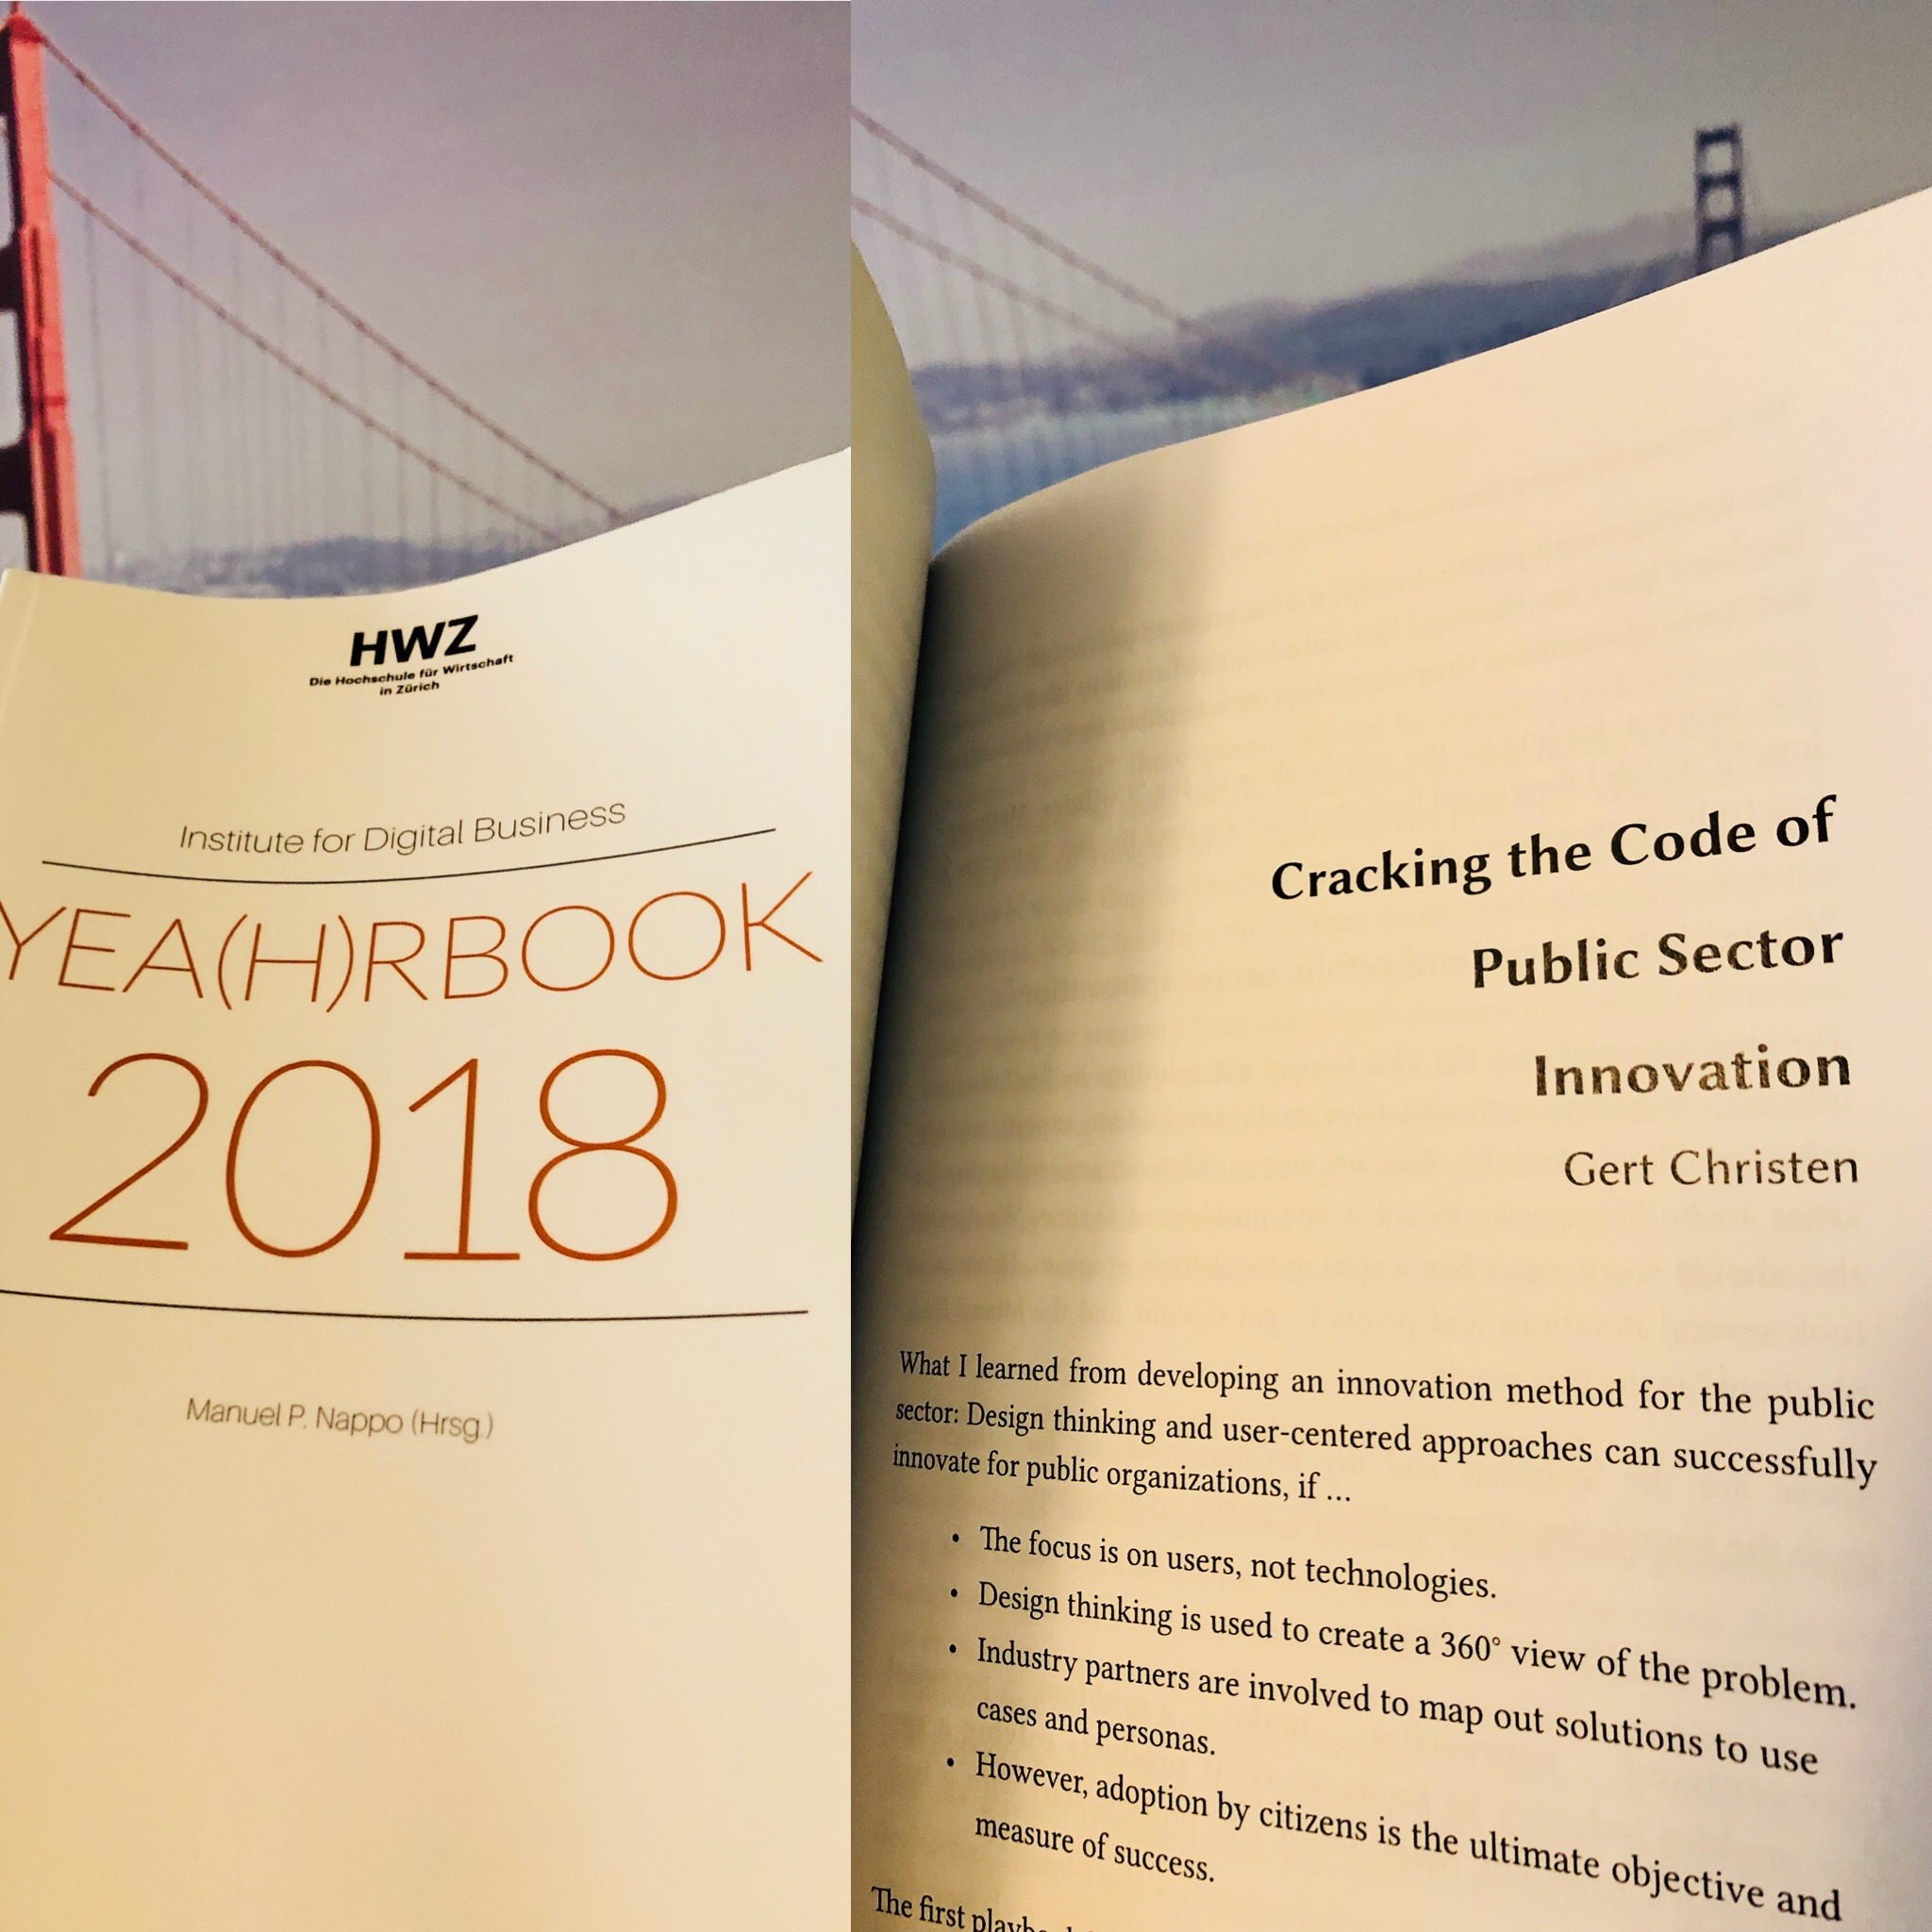 HWZ Yea(h)rbook 2018 article